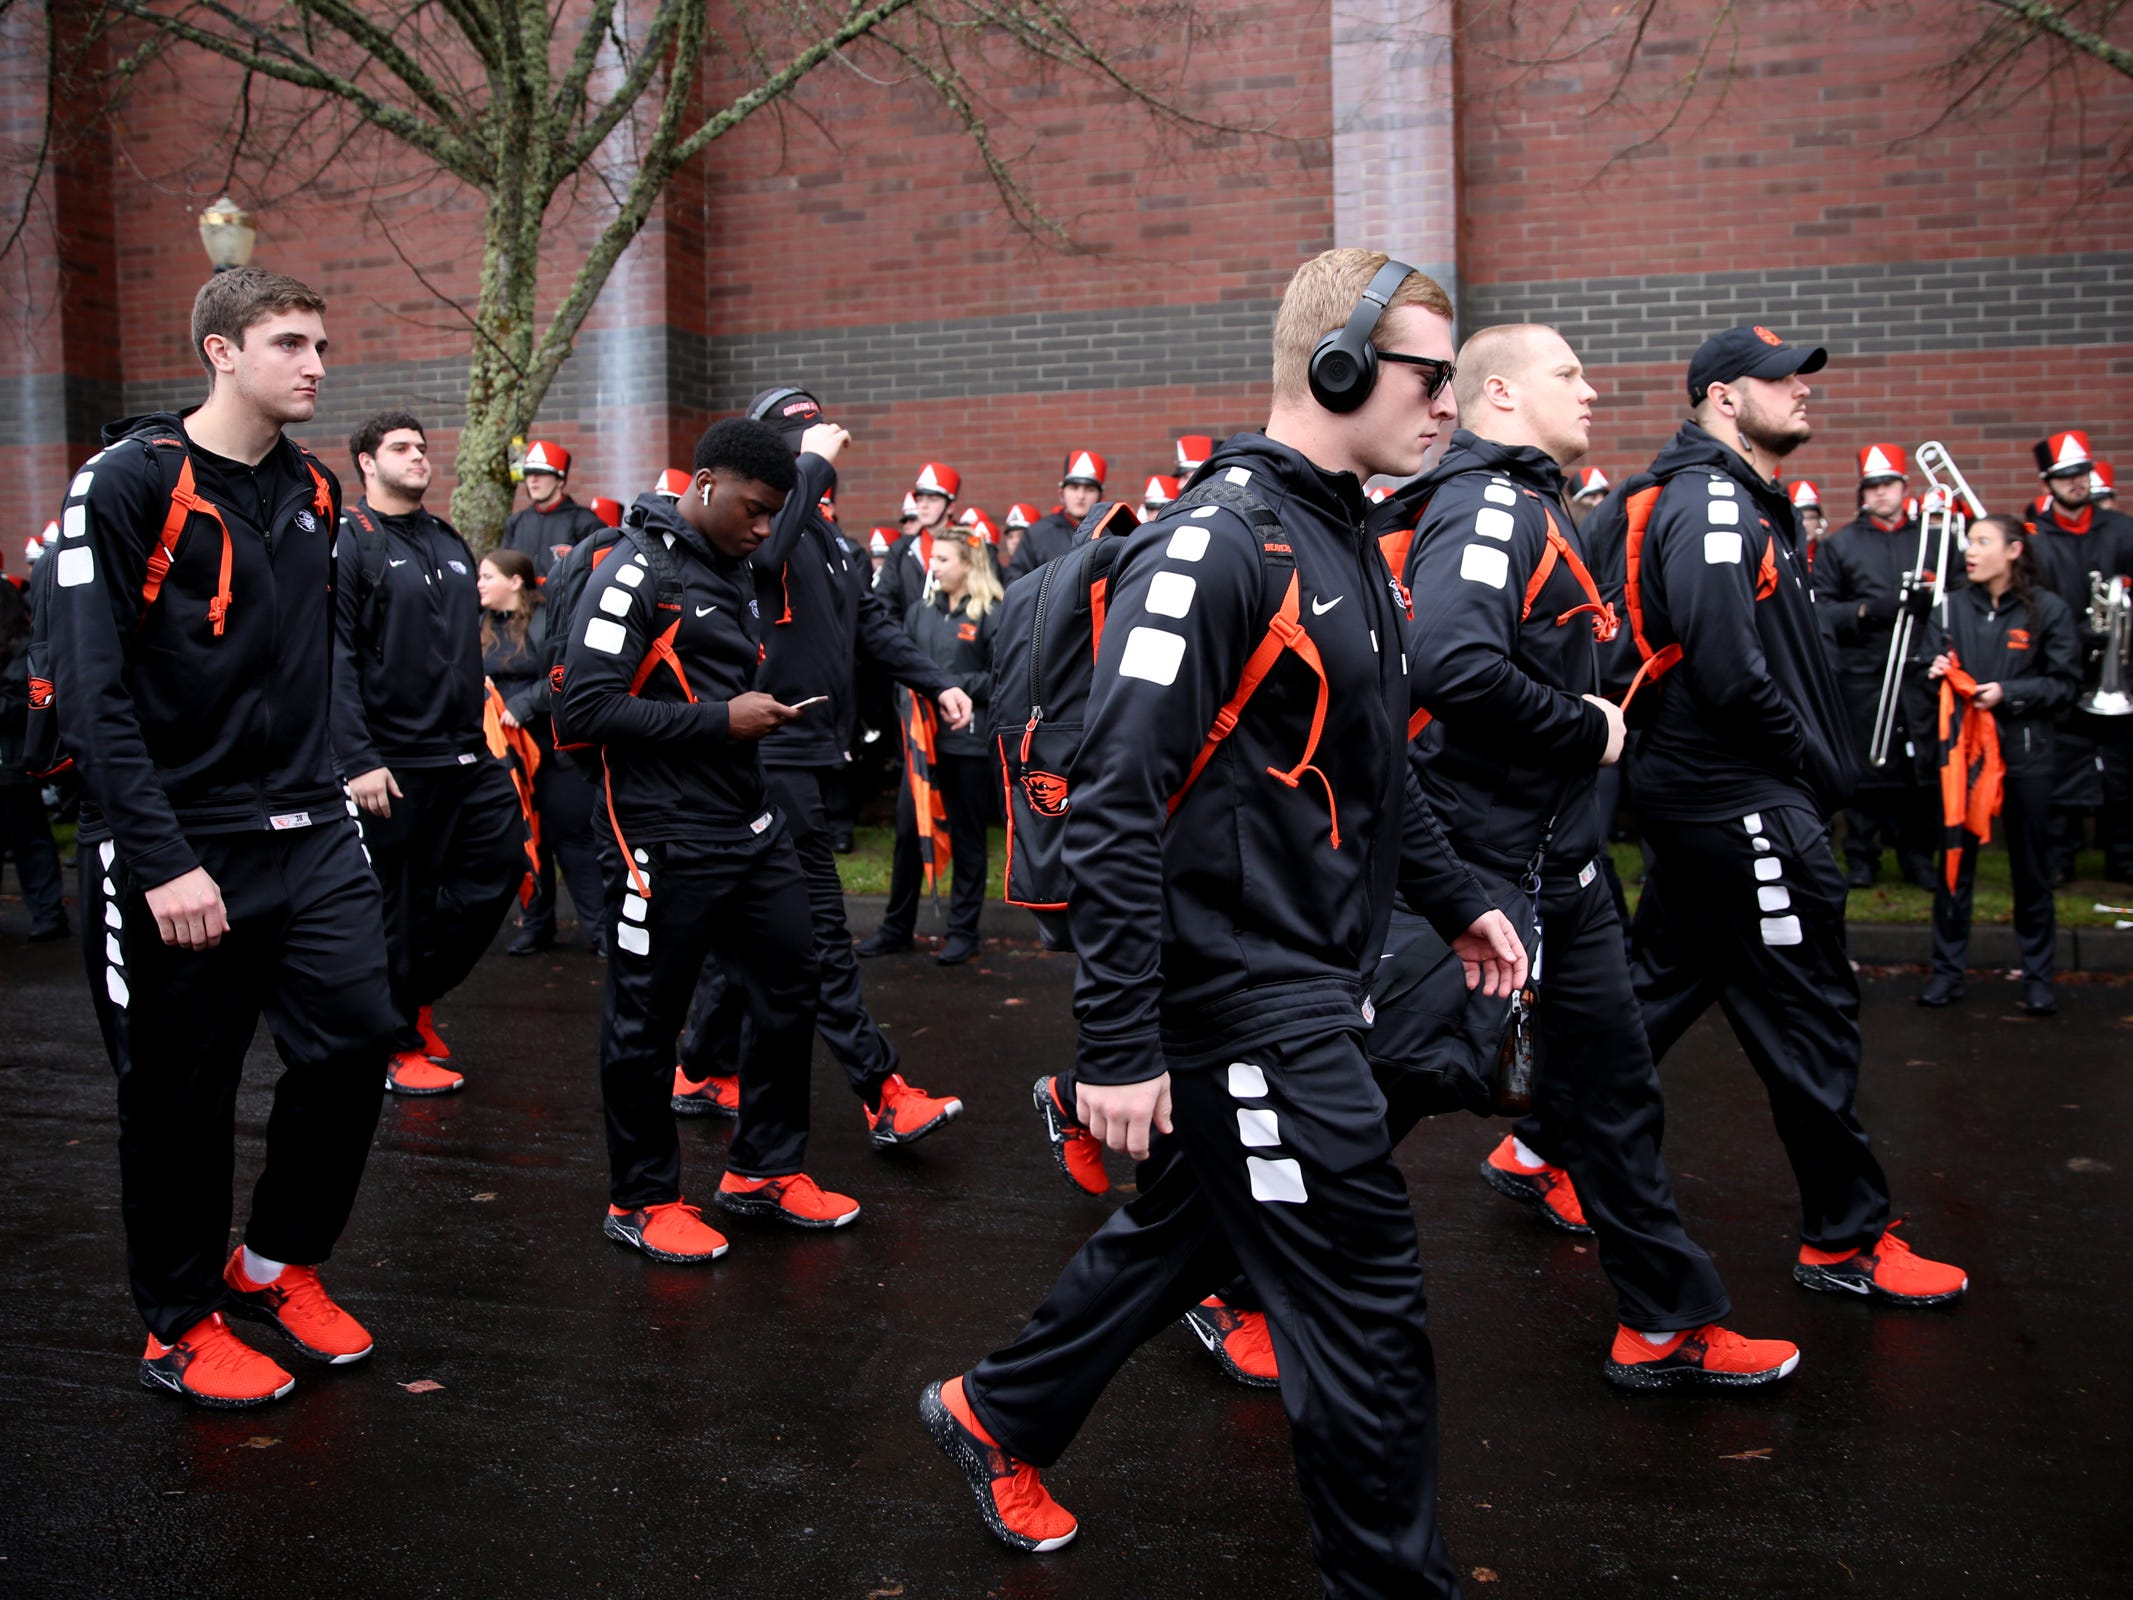 Oregon State players walk to the stadium before the start of the Oregon vs. Oregon State Civil war football game at Oregon State University in Corvallis on Friday, Nov. 23, 2018.